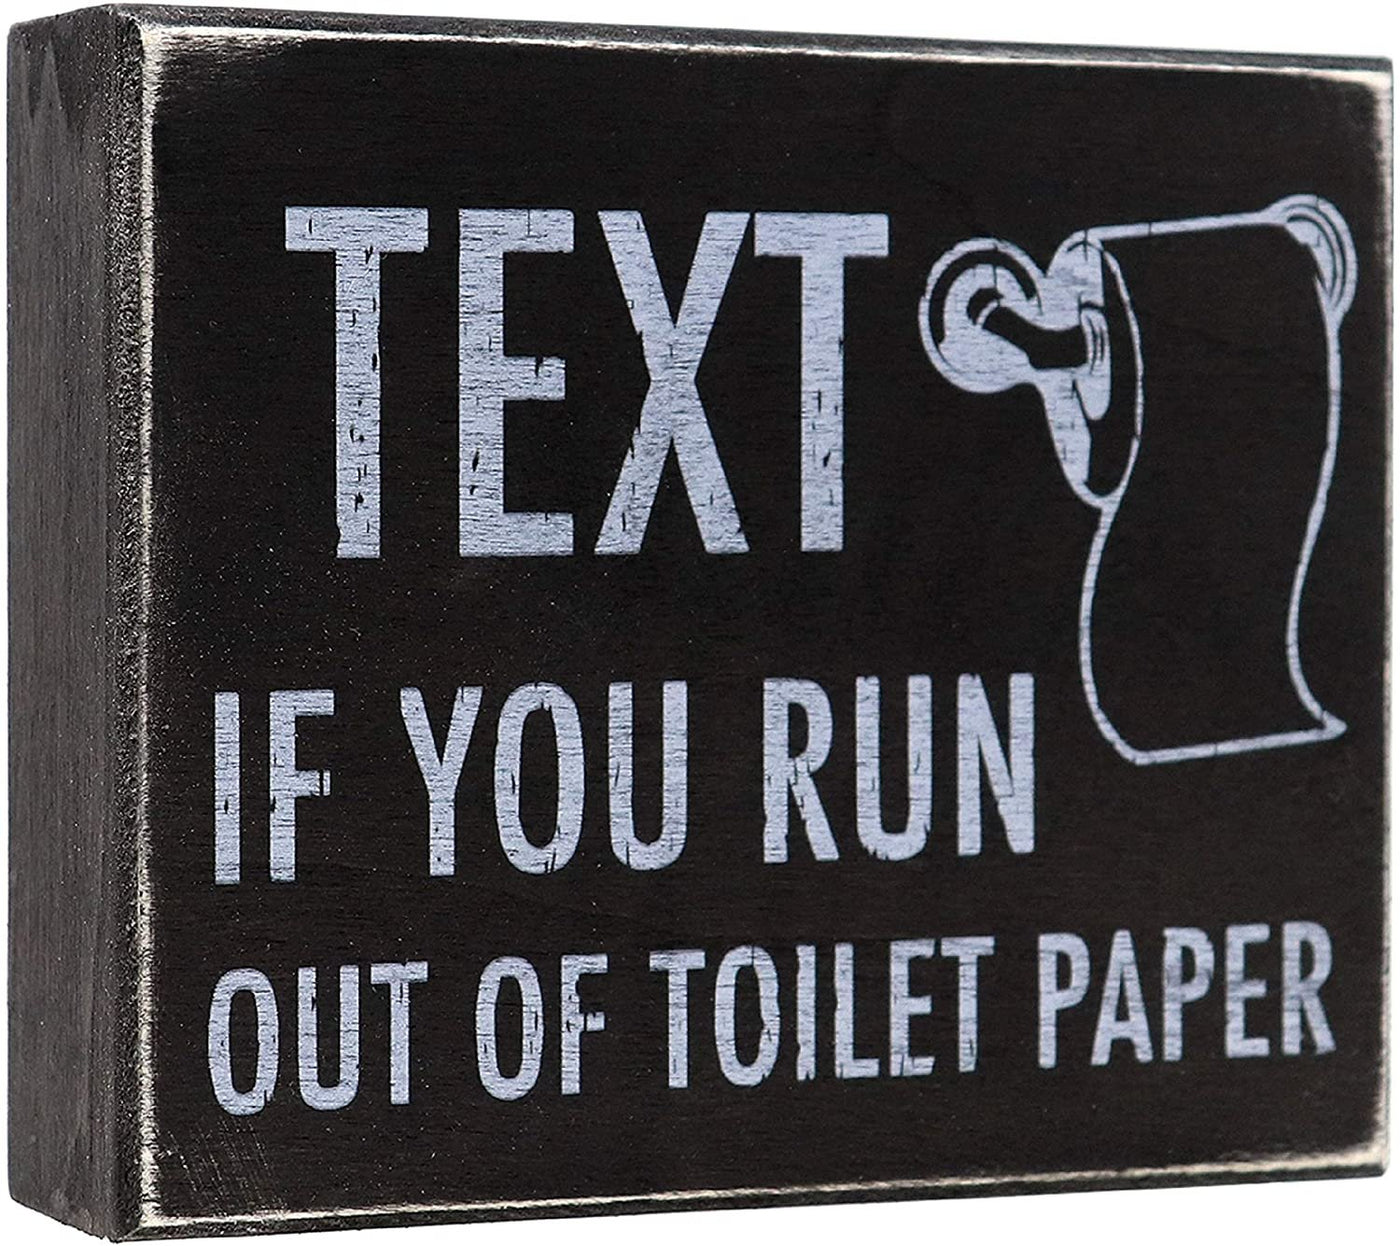 JennyGems -Text If You Run Out of Toilet Paper - Funny Bathroom Decor - Humor Sign for Toilet Room- Decoration for The Bathroom